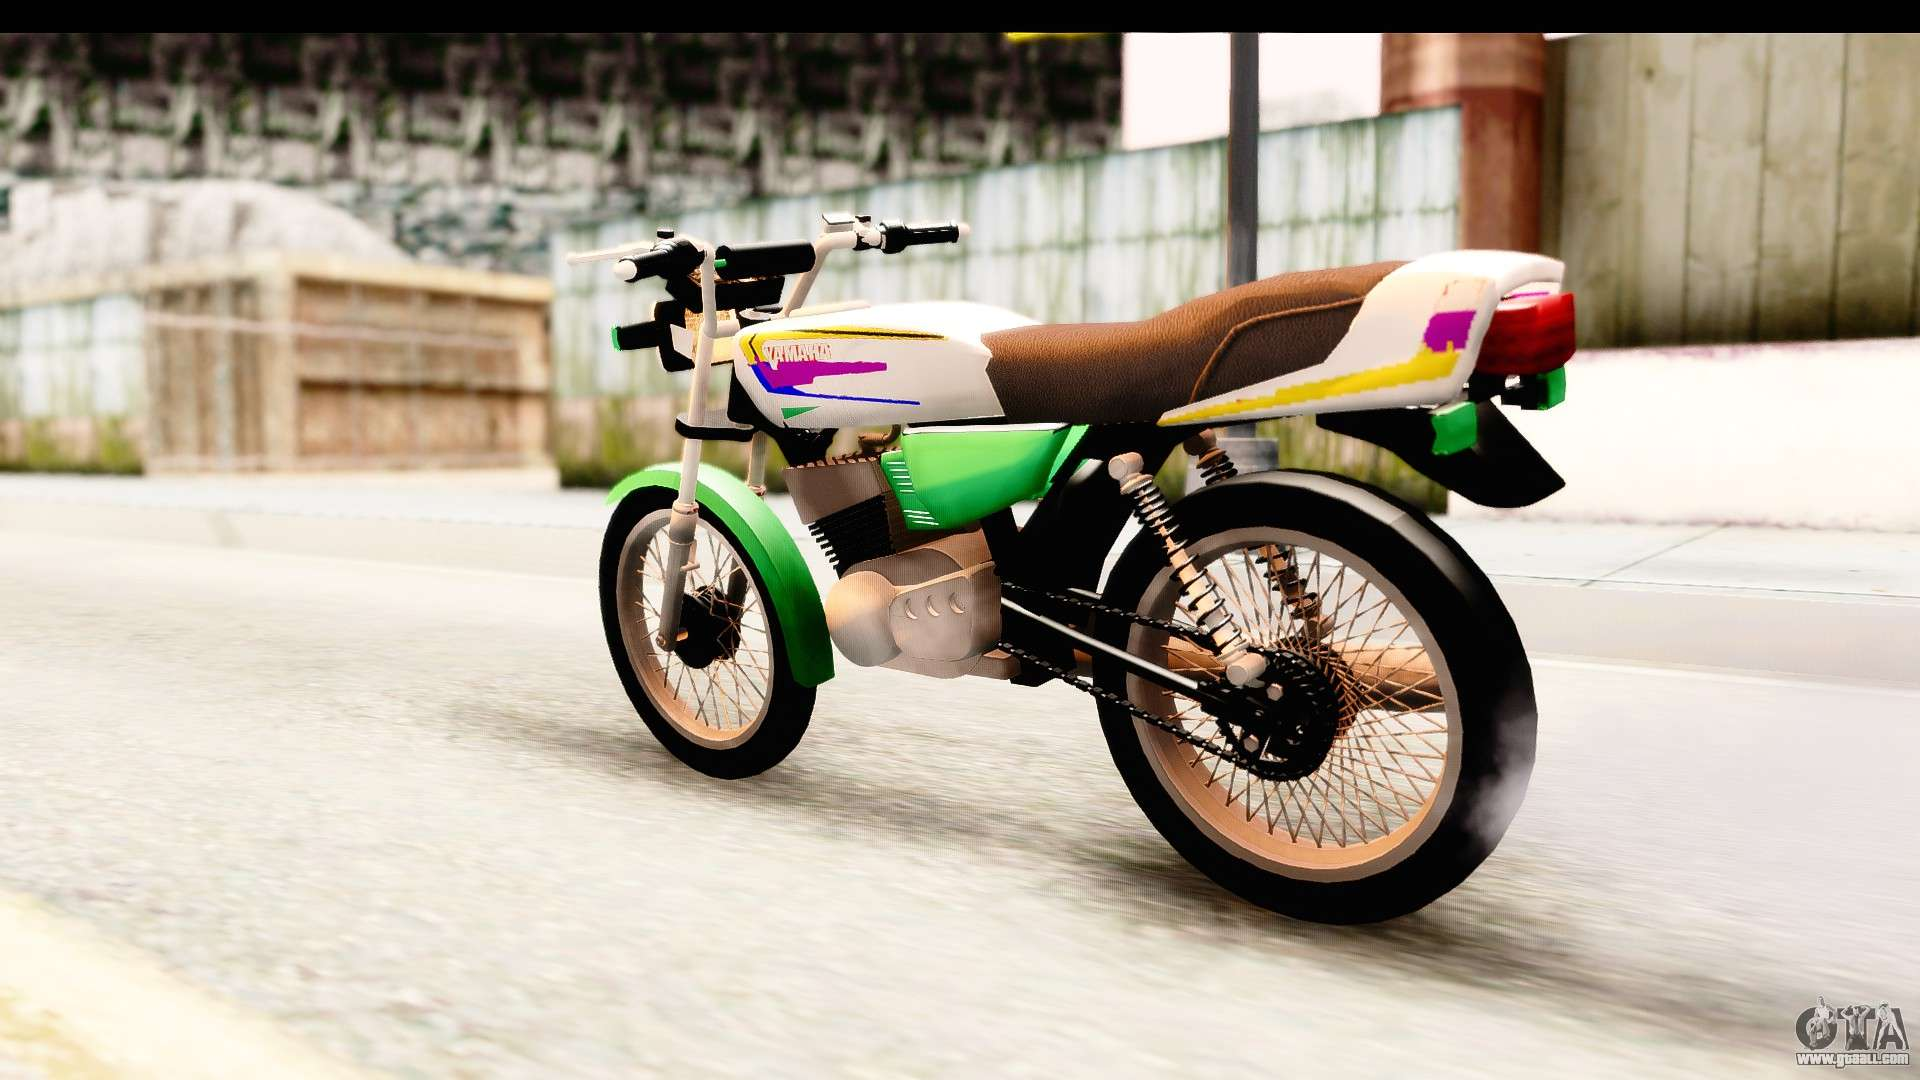 Yamaha rx115 colombia for gta san andreas for Yamaha rx115 motorcycle for sale